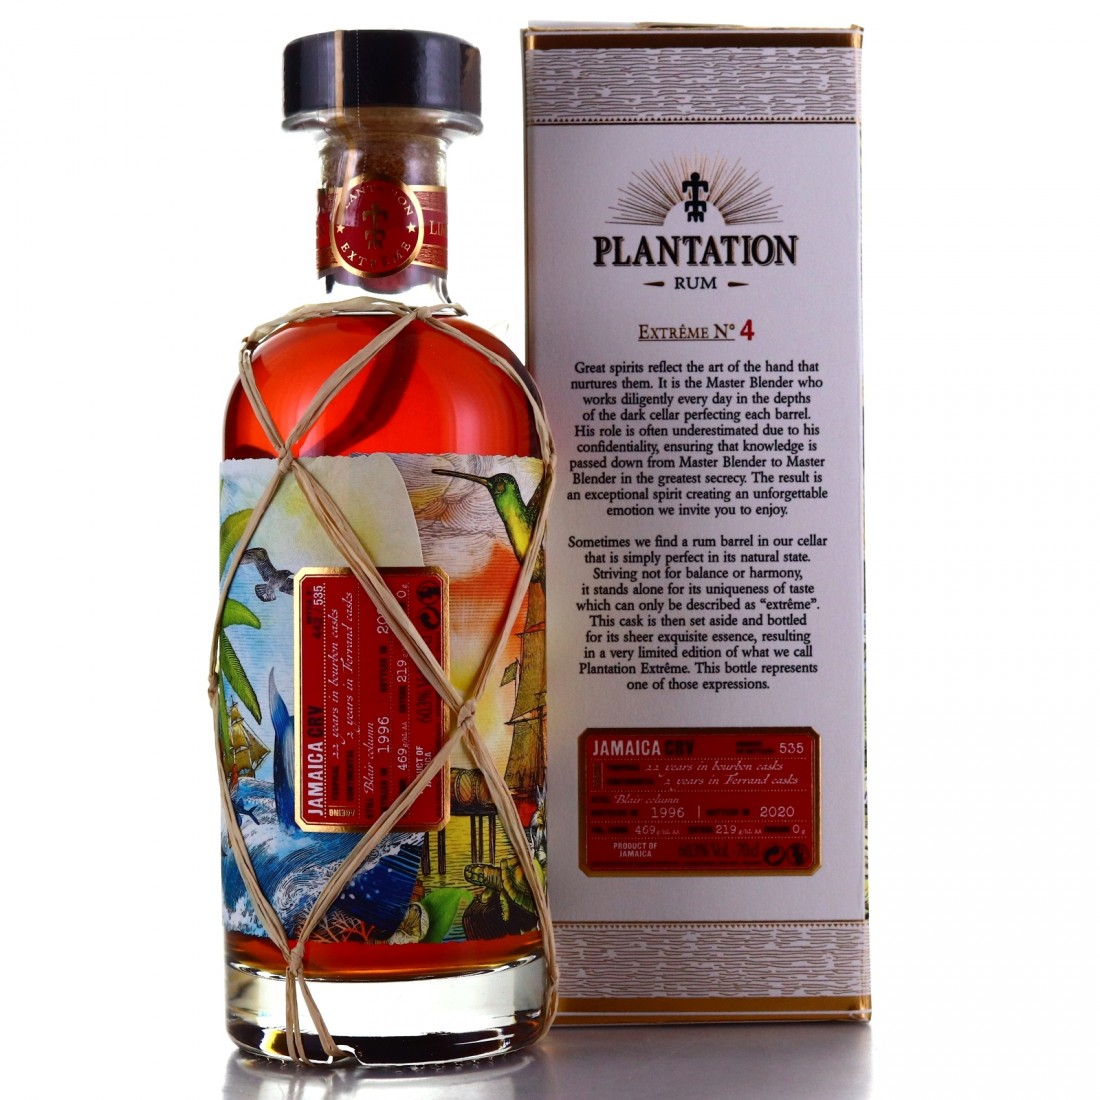 Long Pond CRV 1996 Plantation 24 Year Old Extreme No.4 / Germany